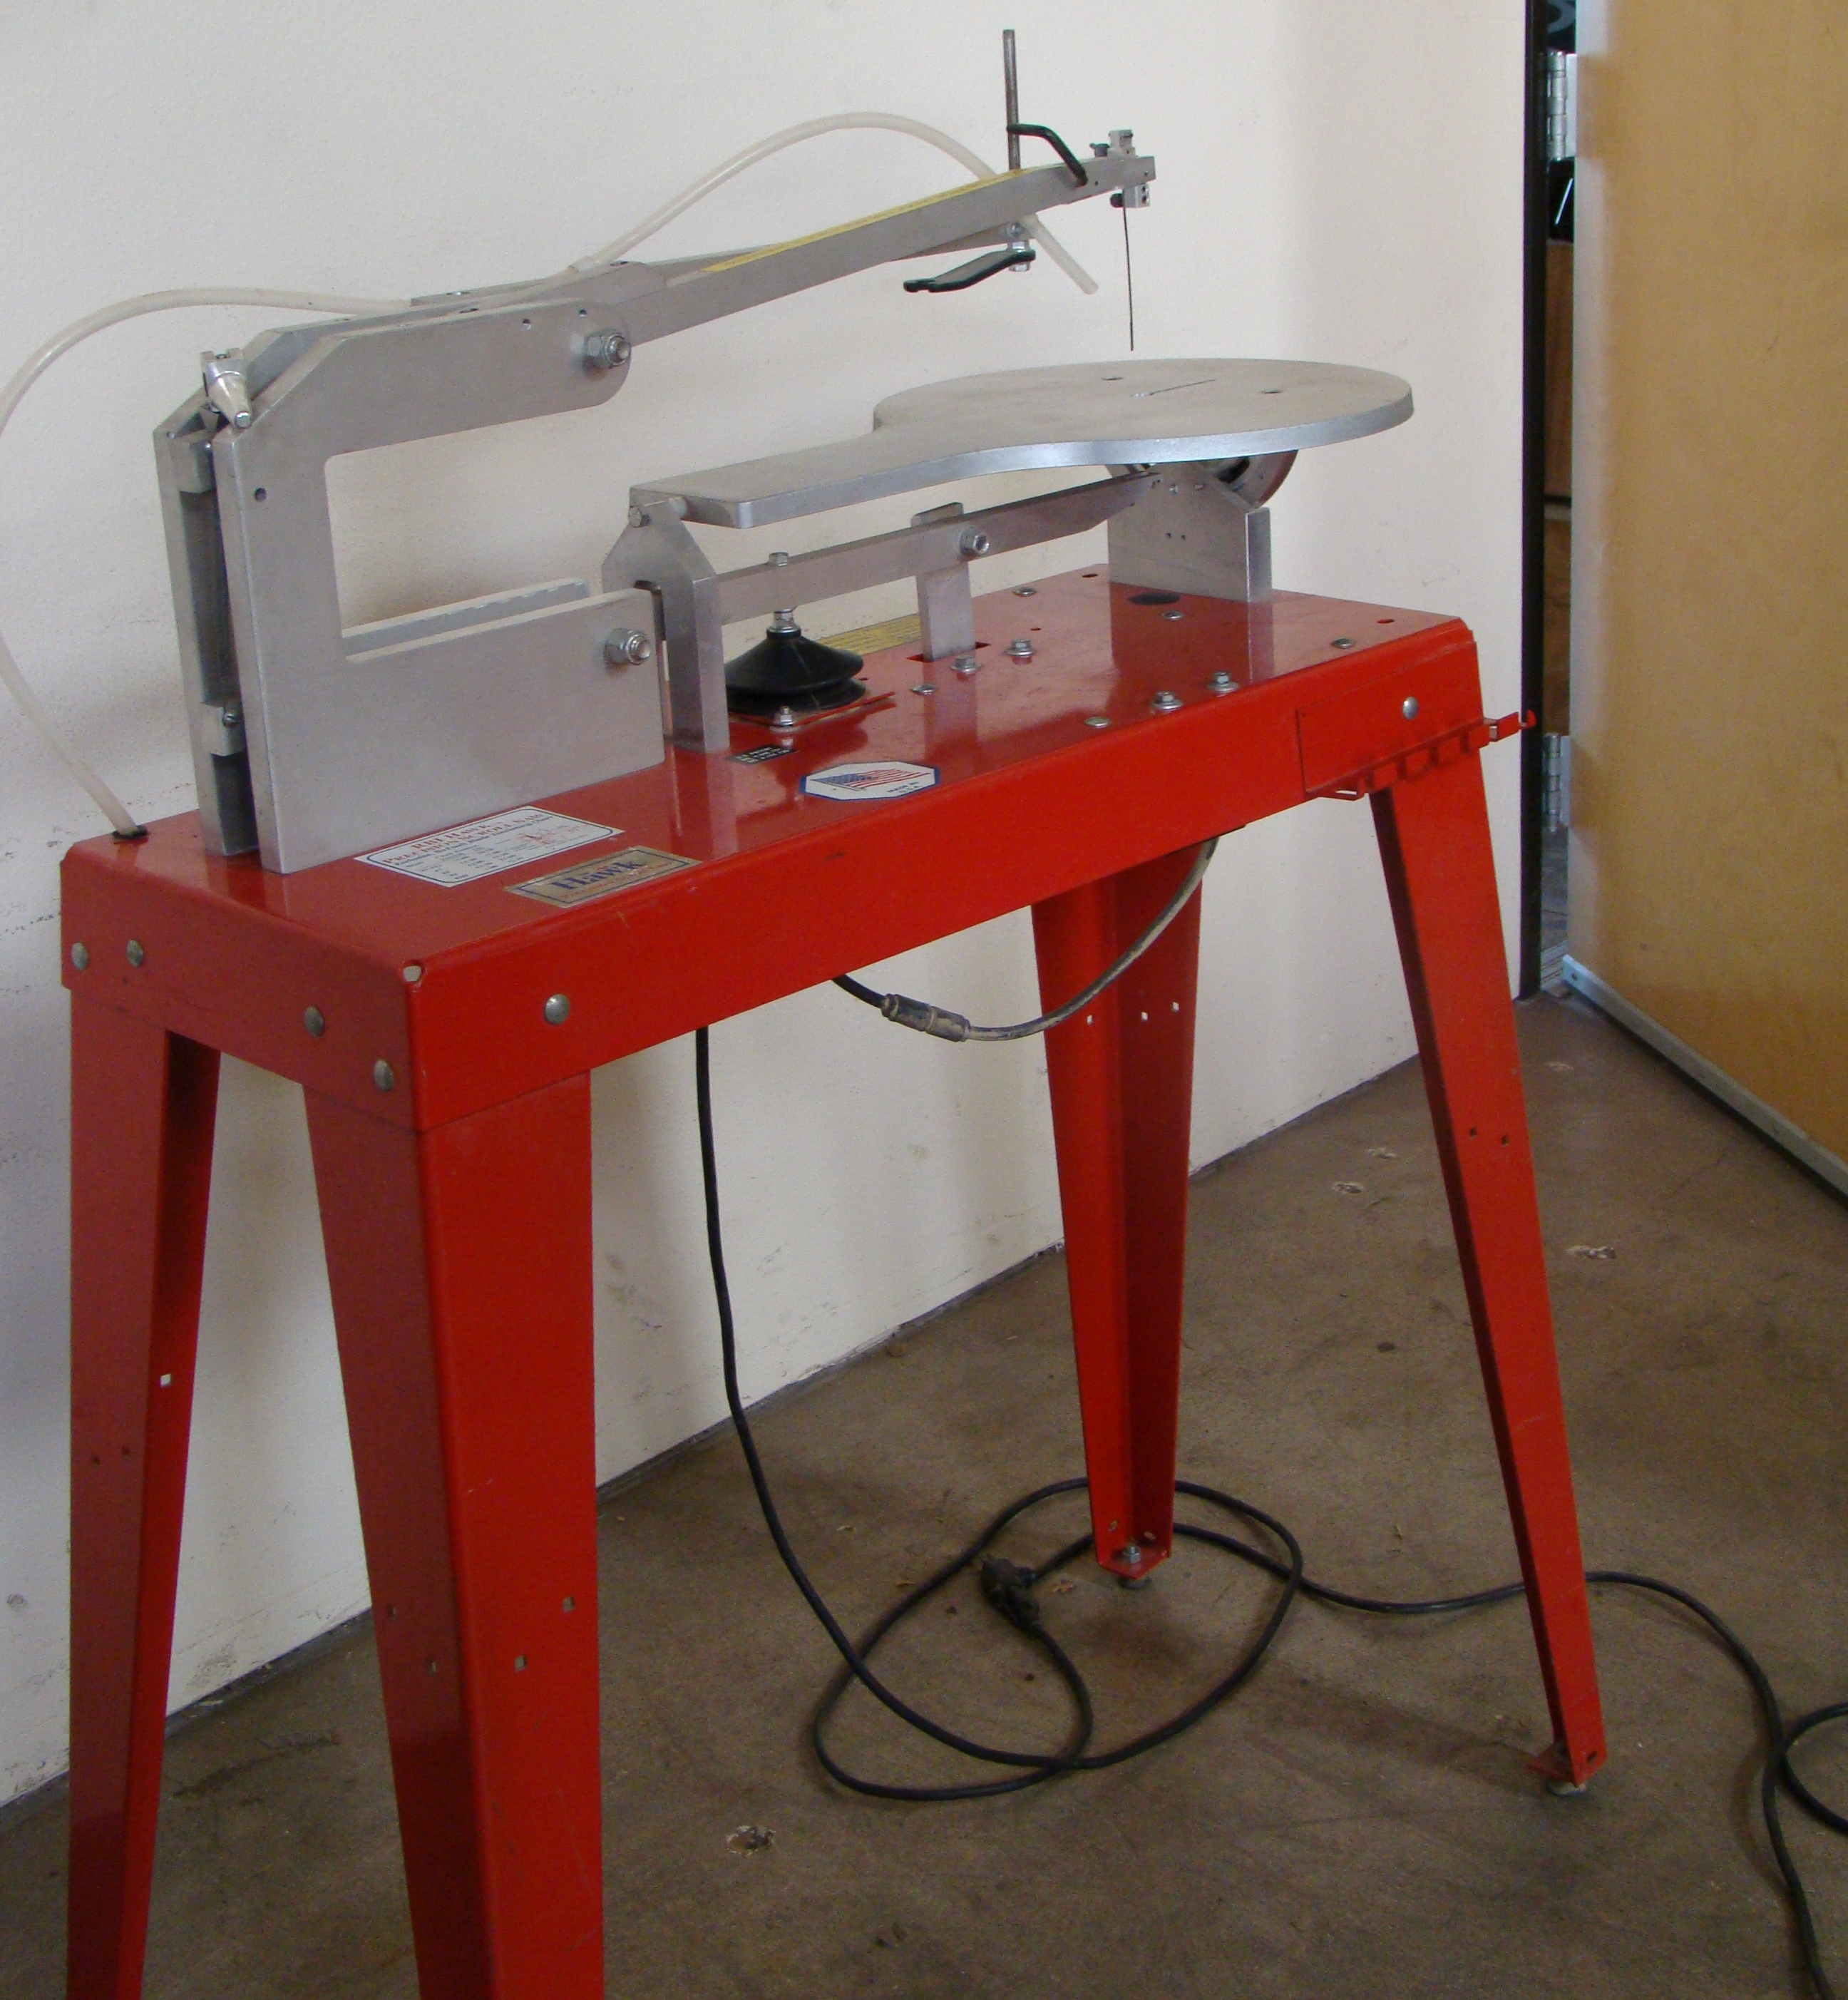 RBI Hawk Precision Scroll Saw Model 226VS 115 Volt - Image 2 of 8